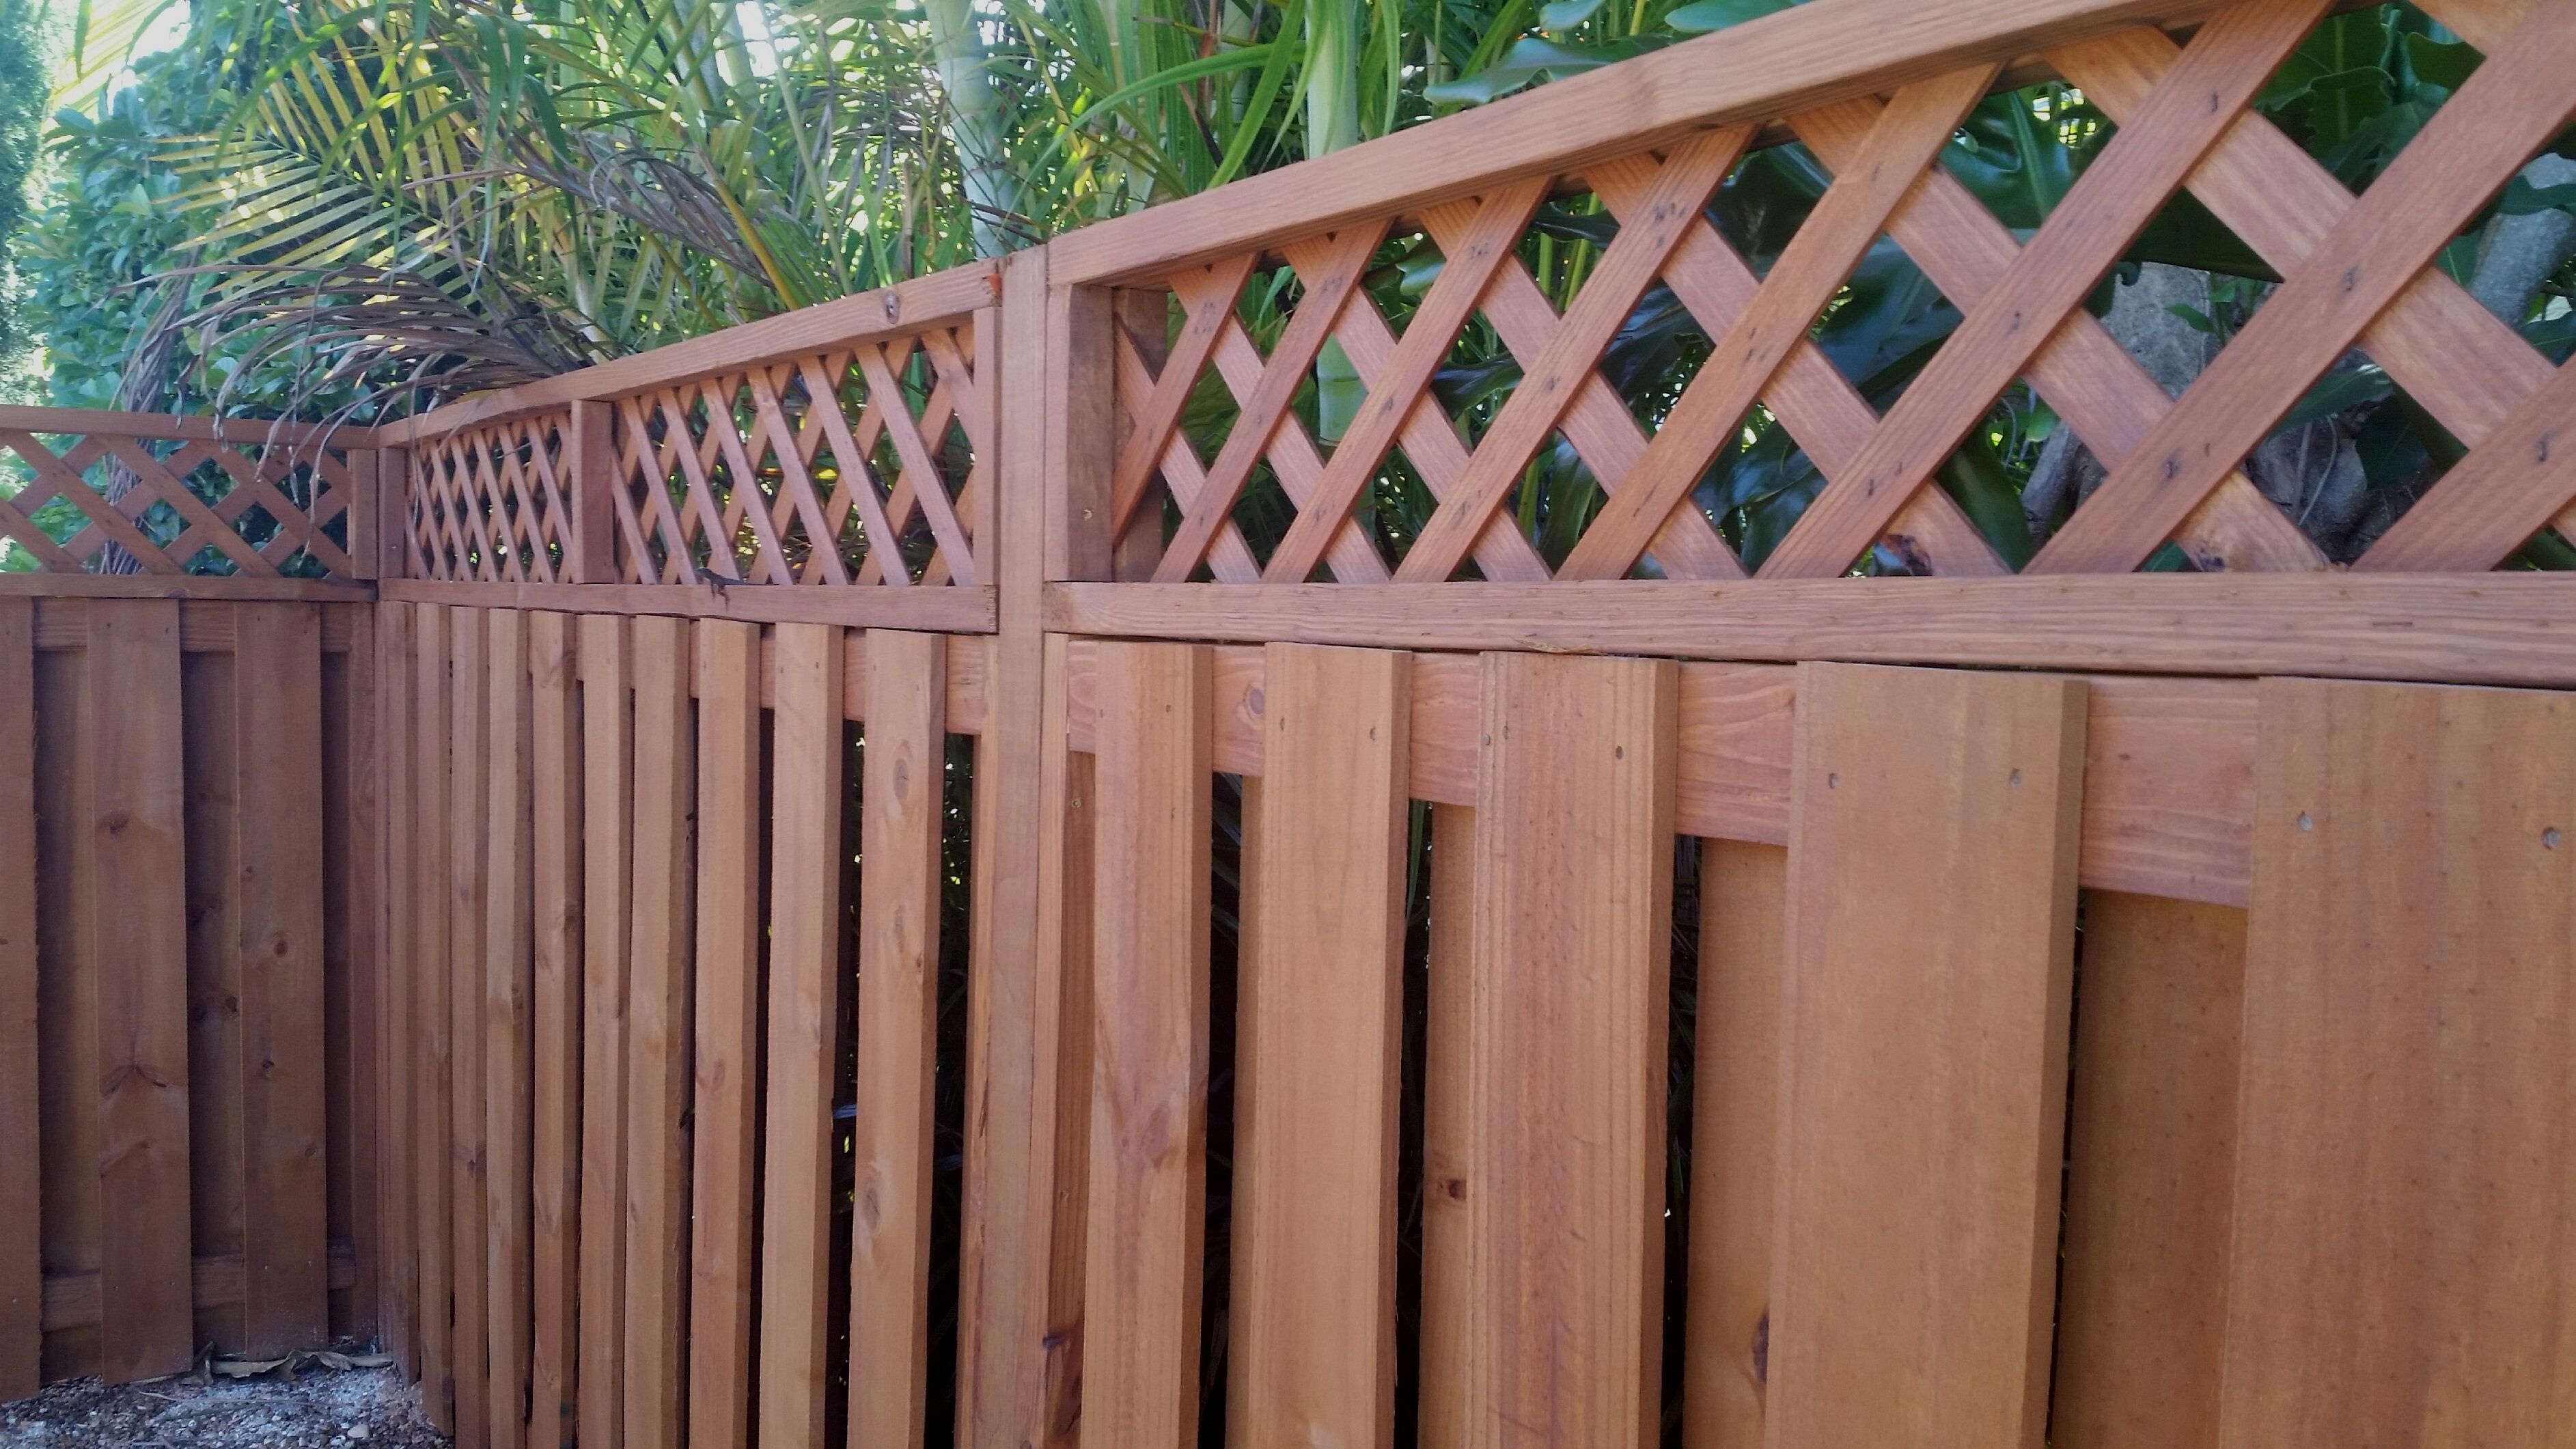 Vertical Shadow Box With Lattice Top Perfect For Tropical Yards Fence With Lattice Top Backyard Diy Projects Wood Fence Design